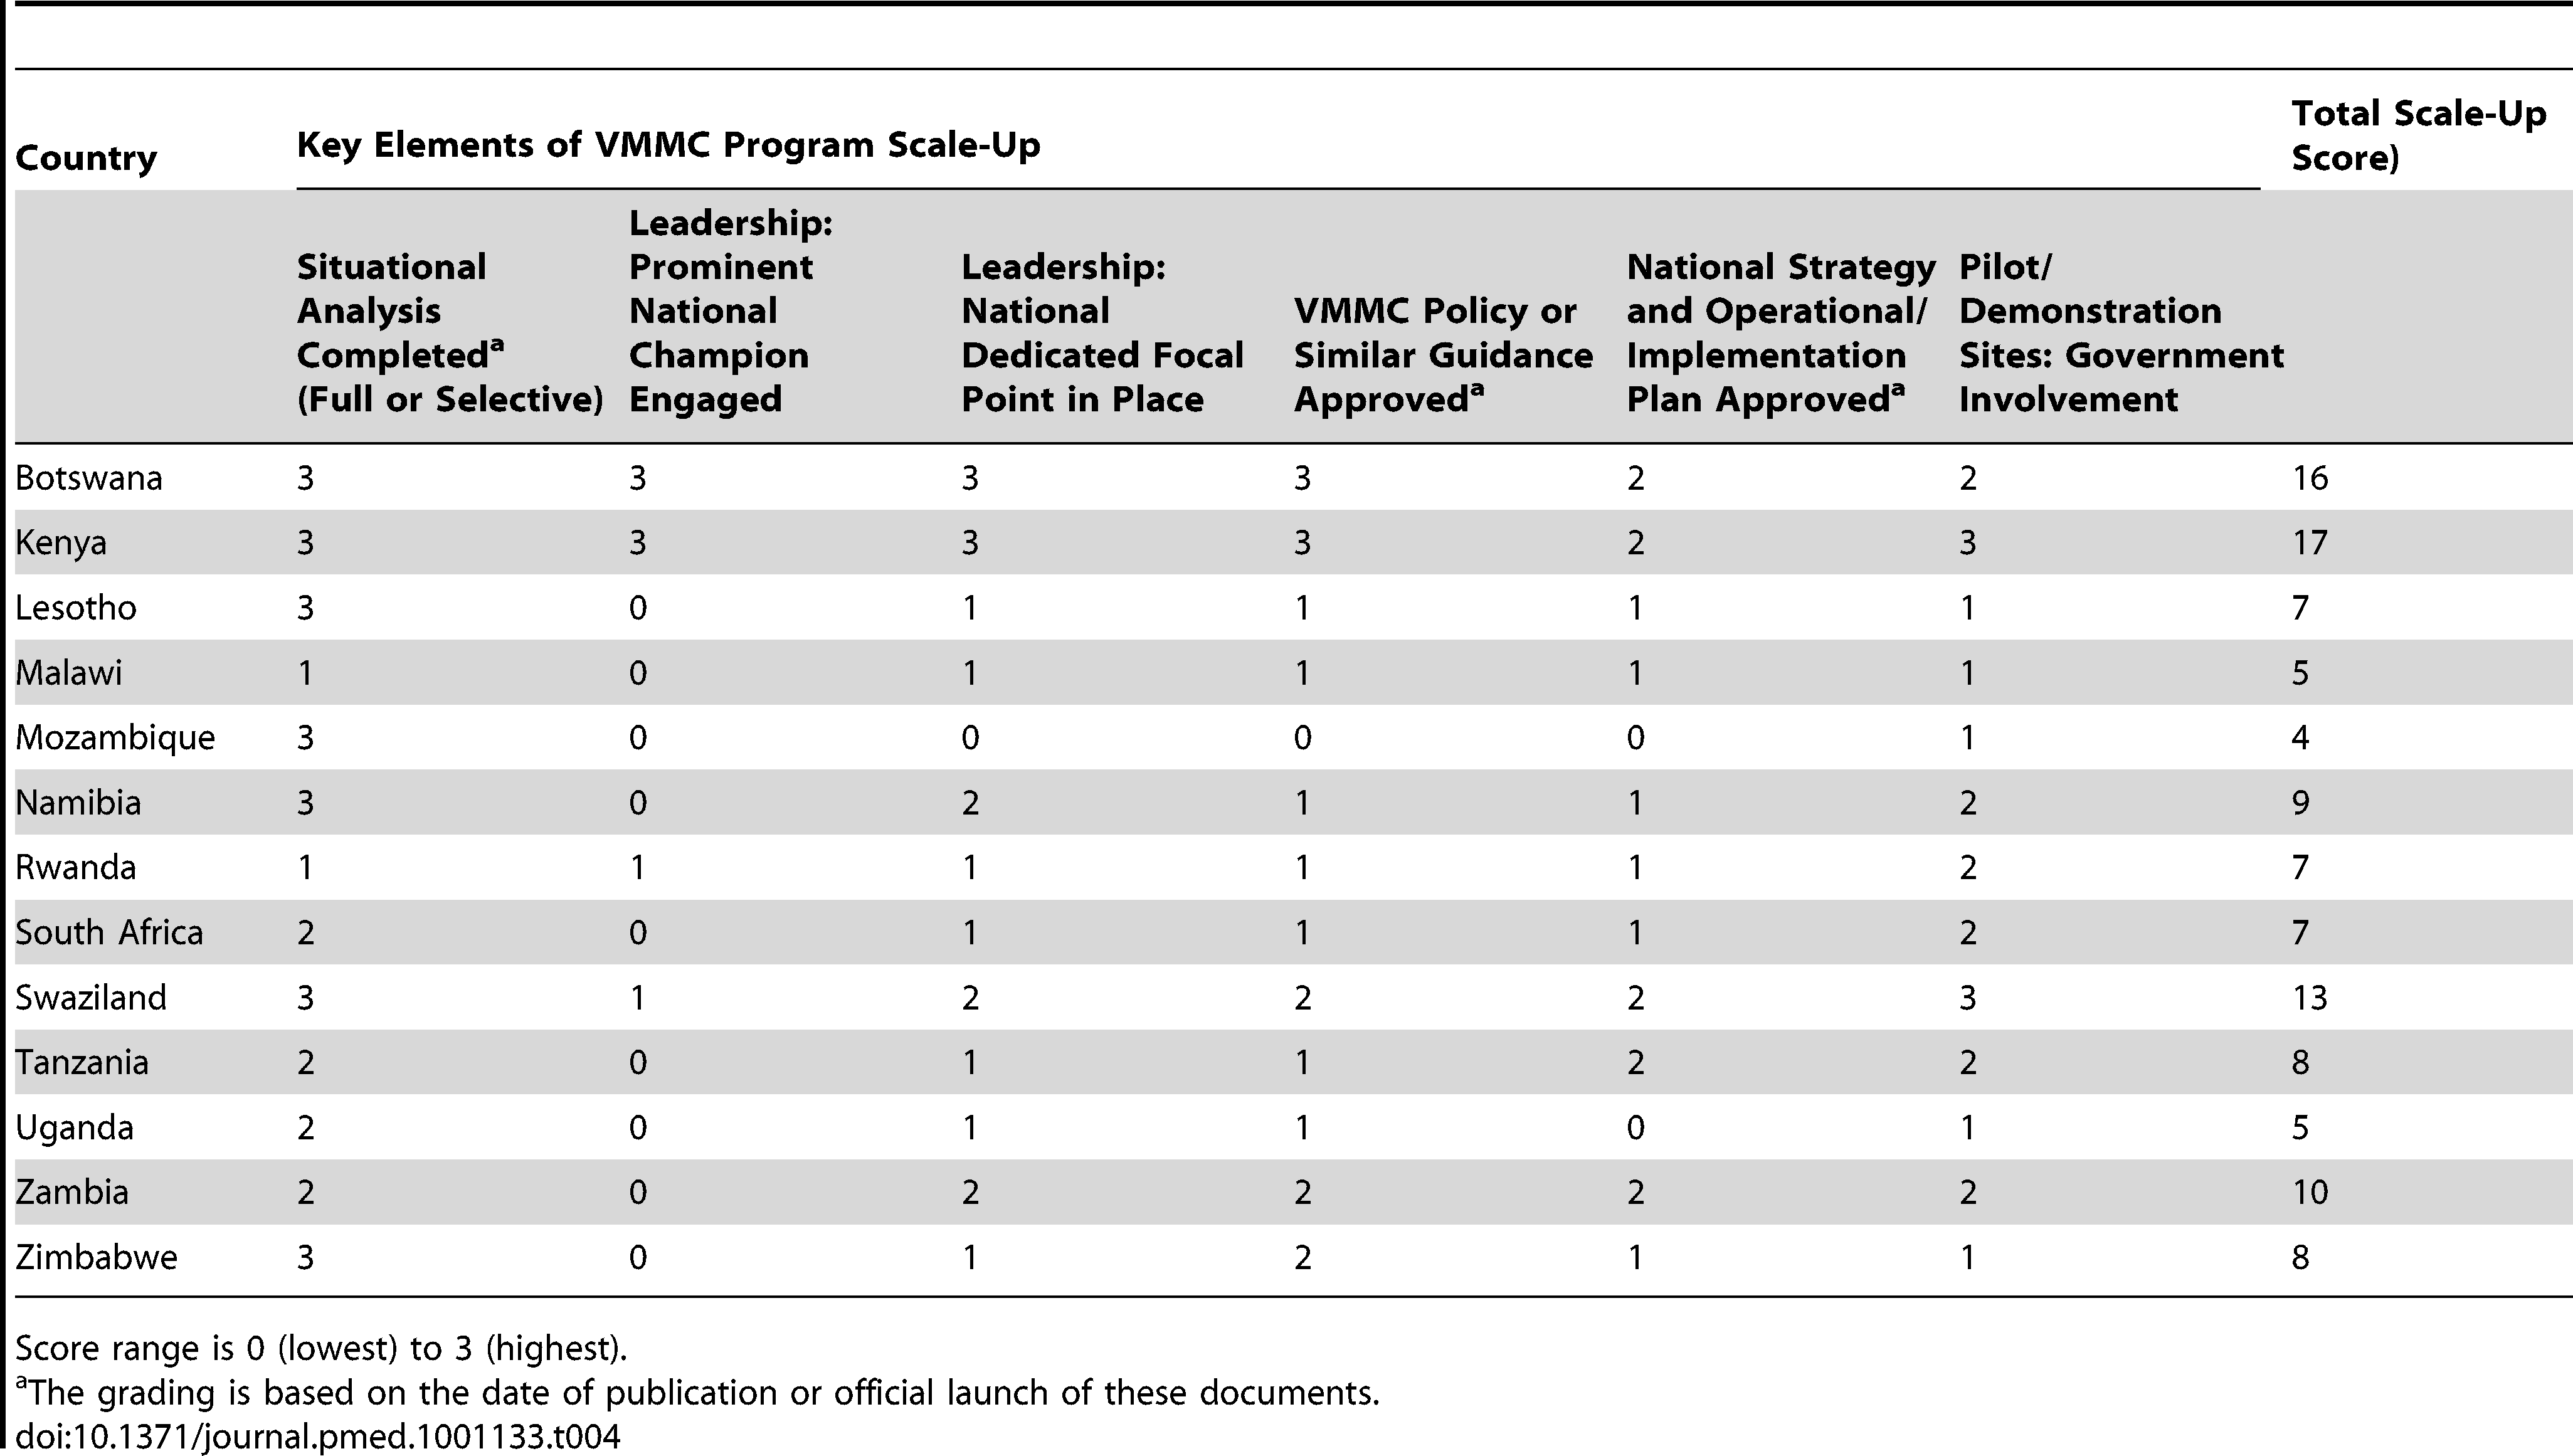 Country progress with scaling- up VMMC programs in focal countries (December 2010).